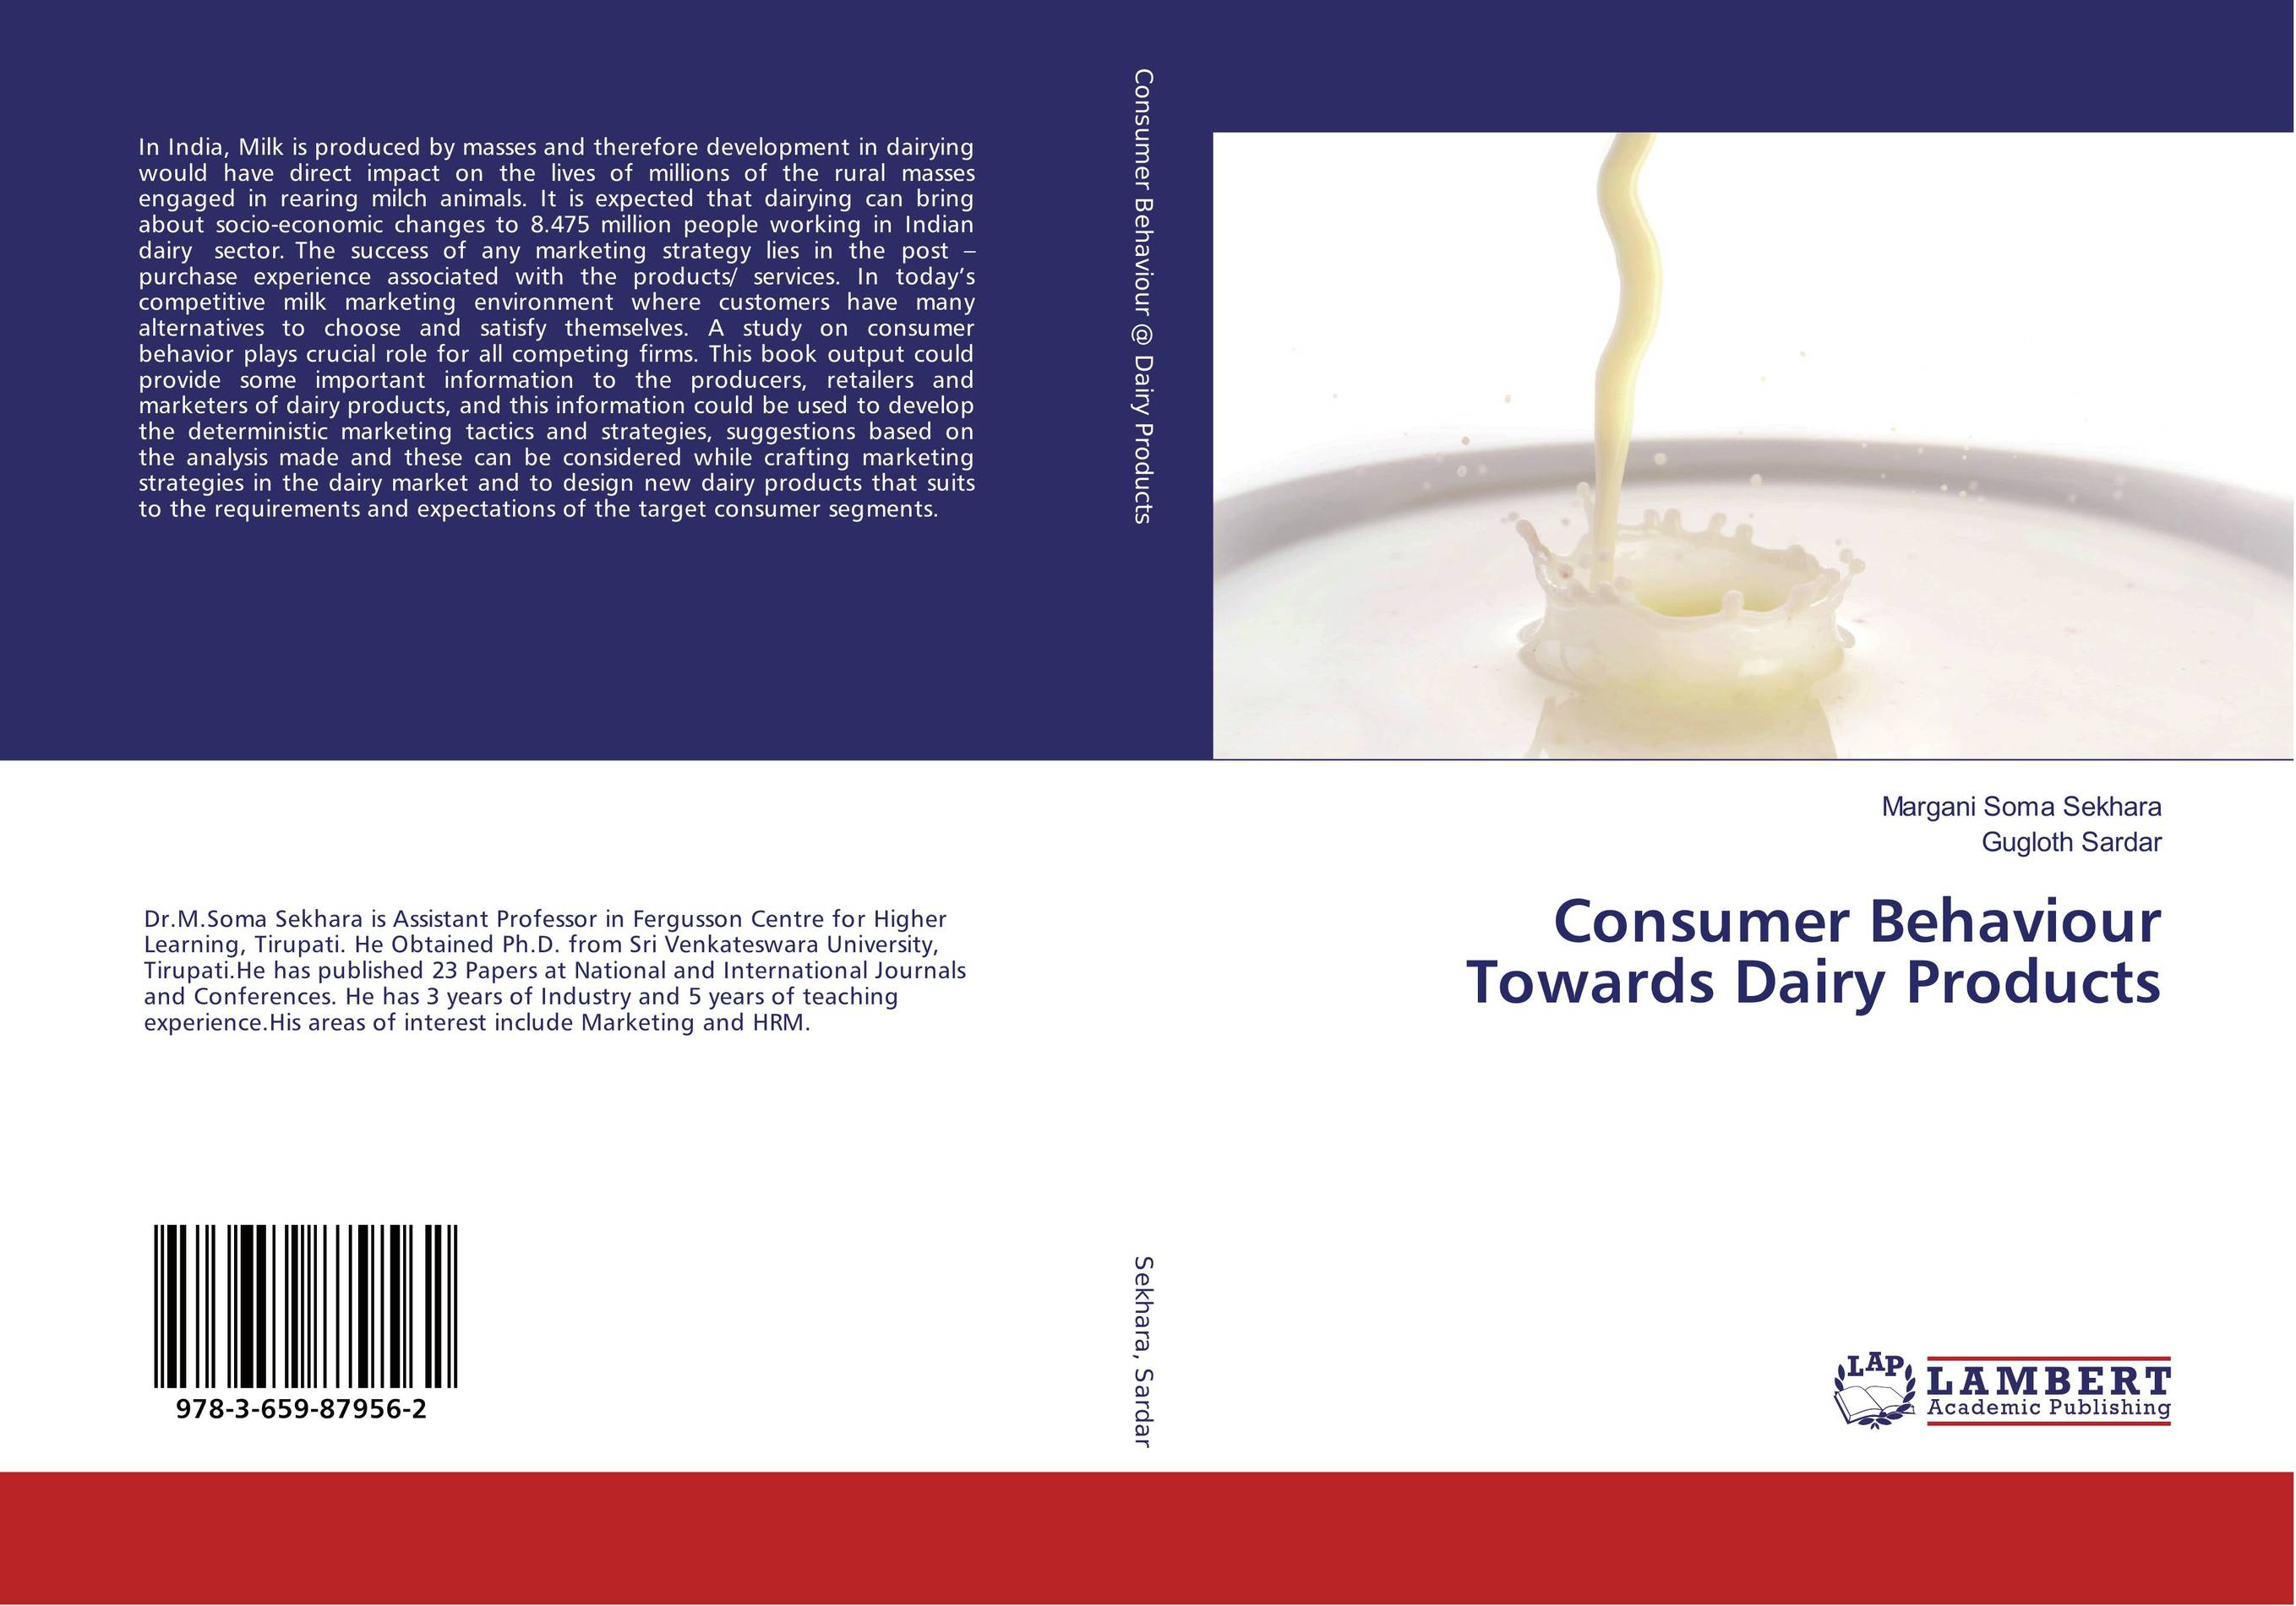 Consumer Behaviour Towards Dairy Products